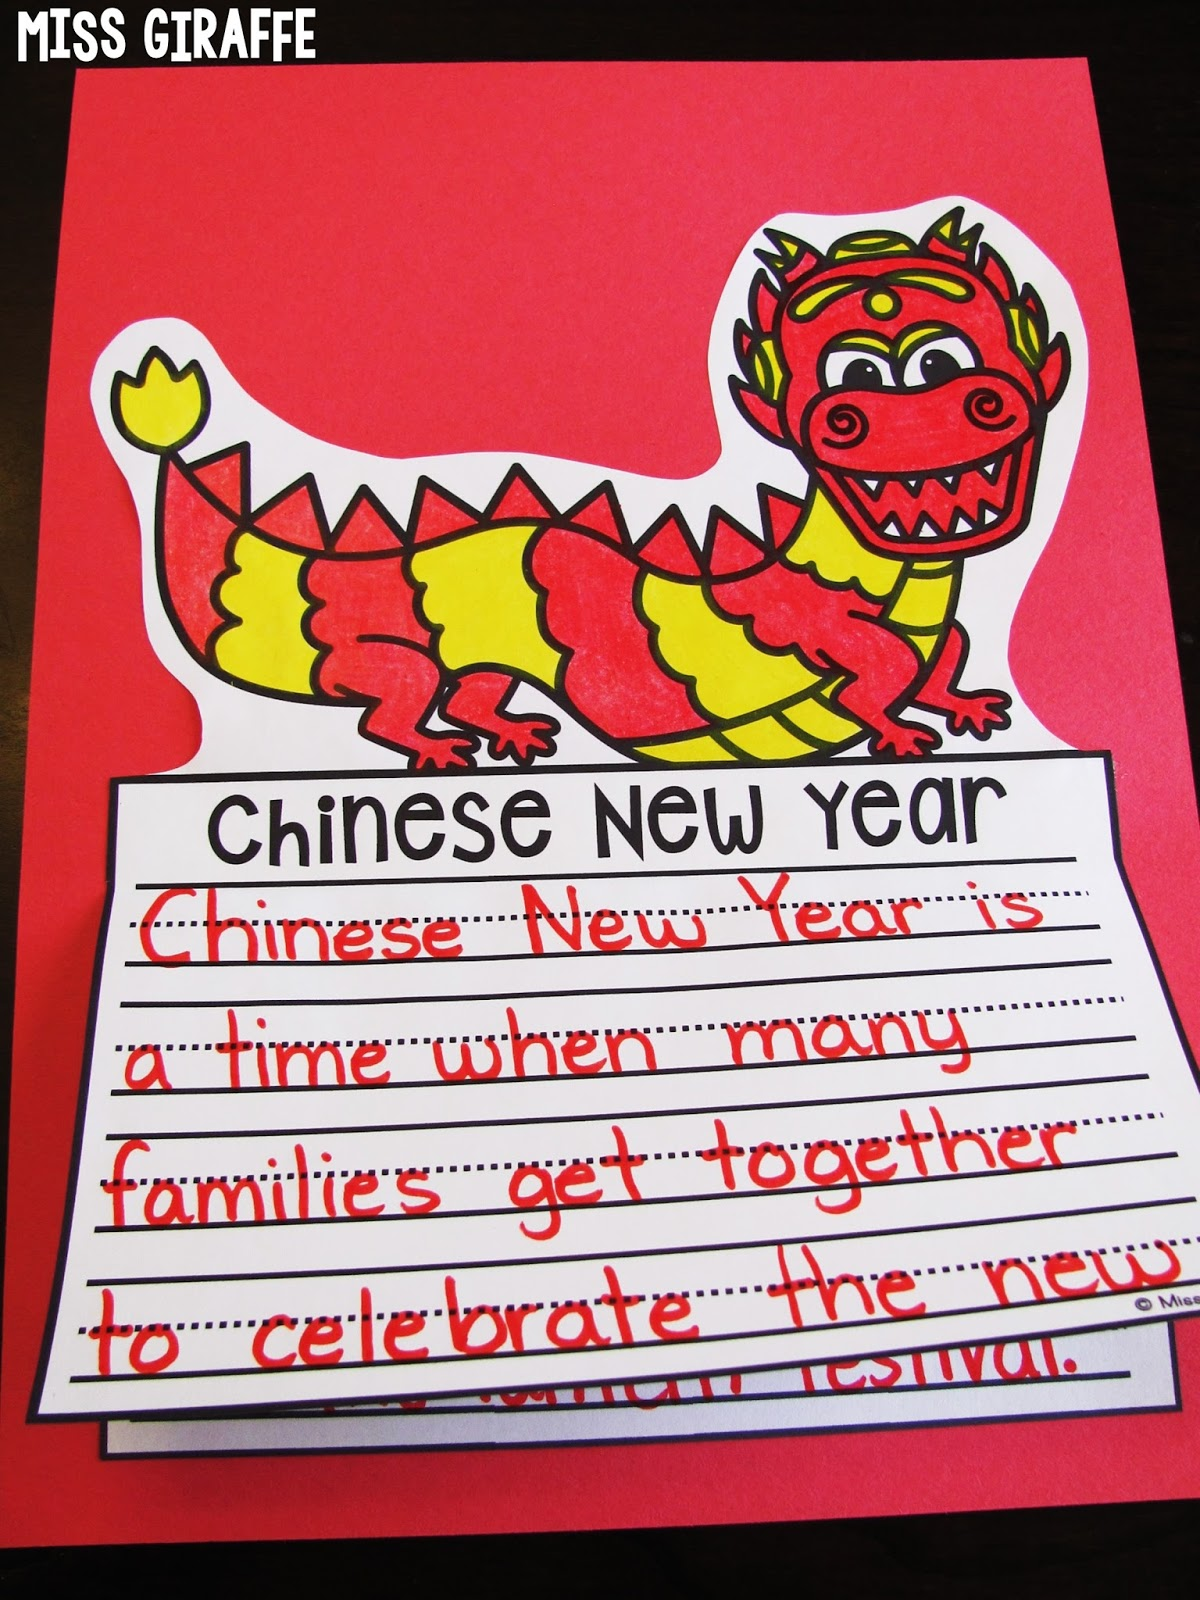 The Chinese New Year starts today.